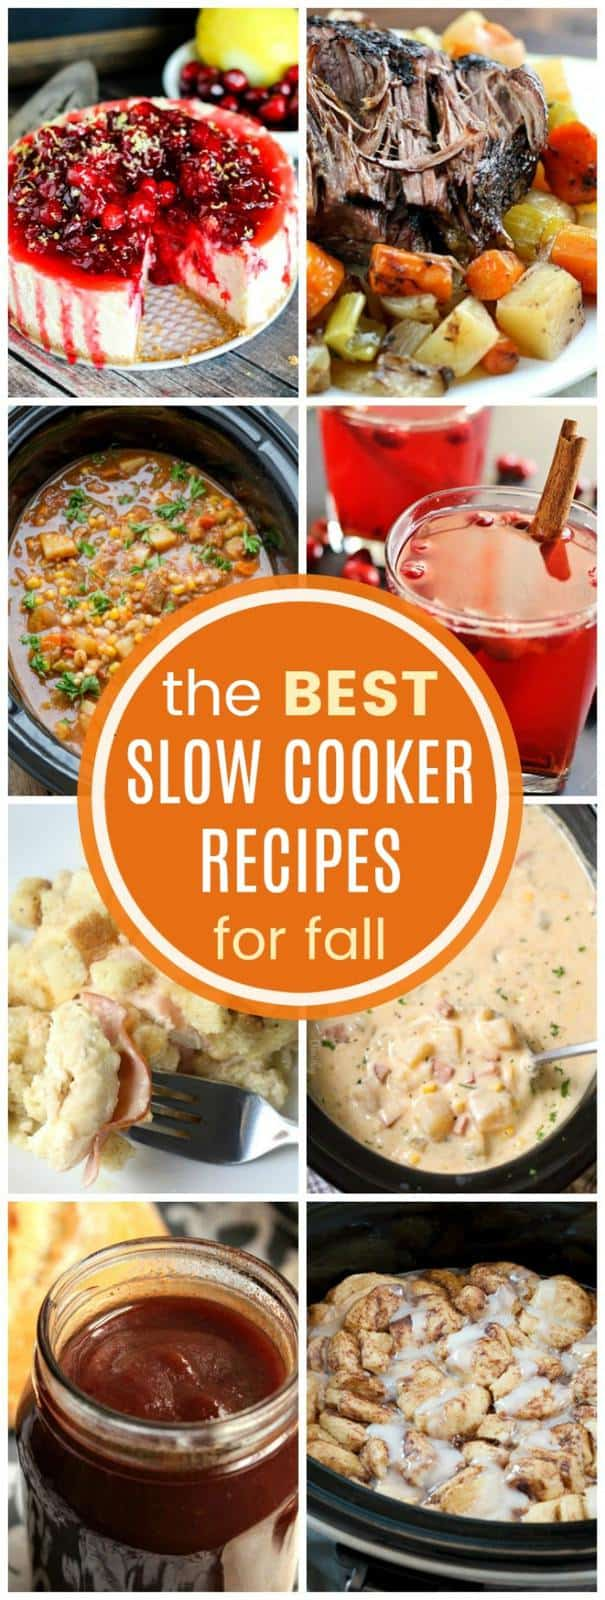 The Best Slow Cooker Recipes for Fall with over 25 comfort food recipes from you crock pot for appetizers, dinner, dessert, and drinks. #slowcooker #slowcookerrecipe #crockpot